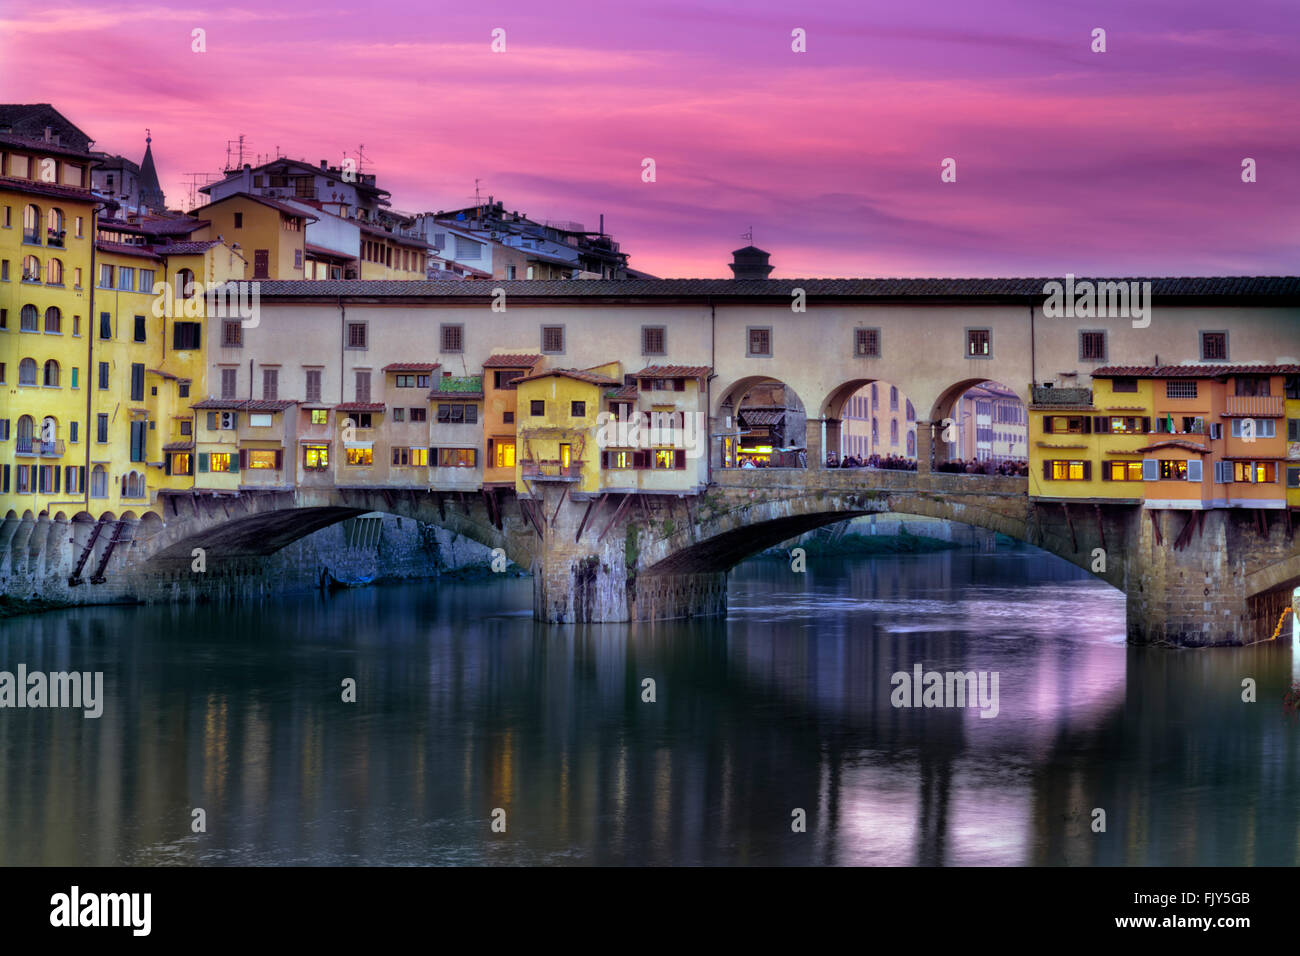 Beautiful and special twilight colors in Ponte Vecchio. Florence, Italy. - Stock Image